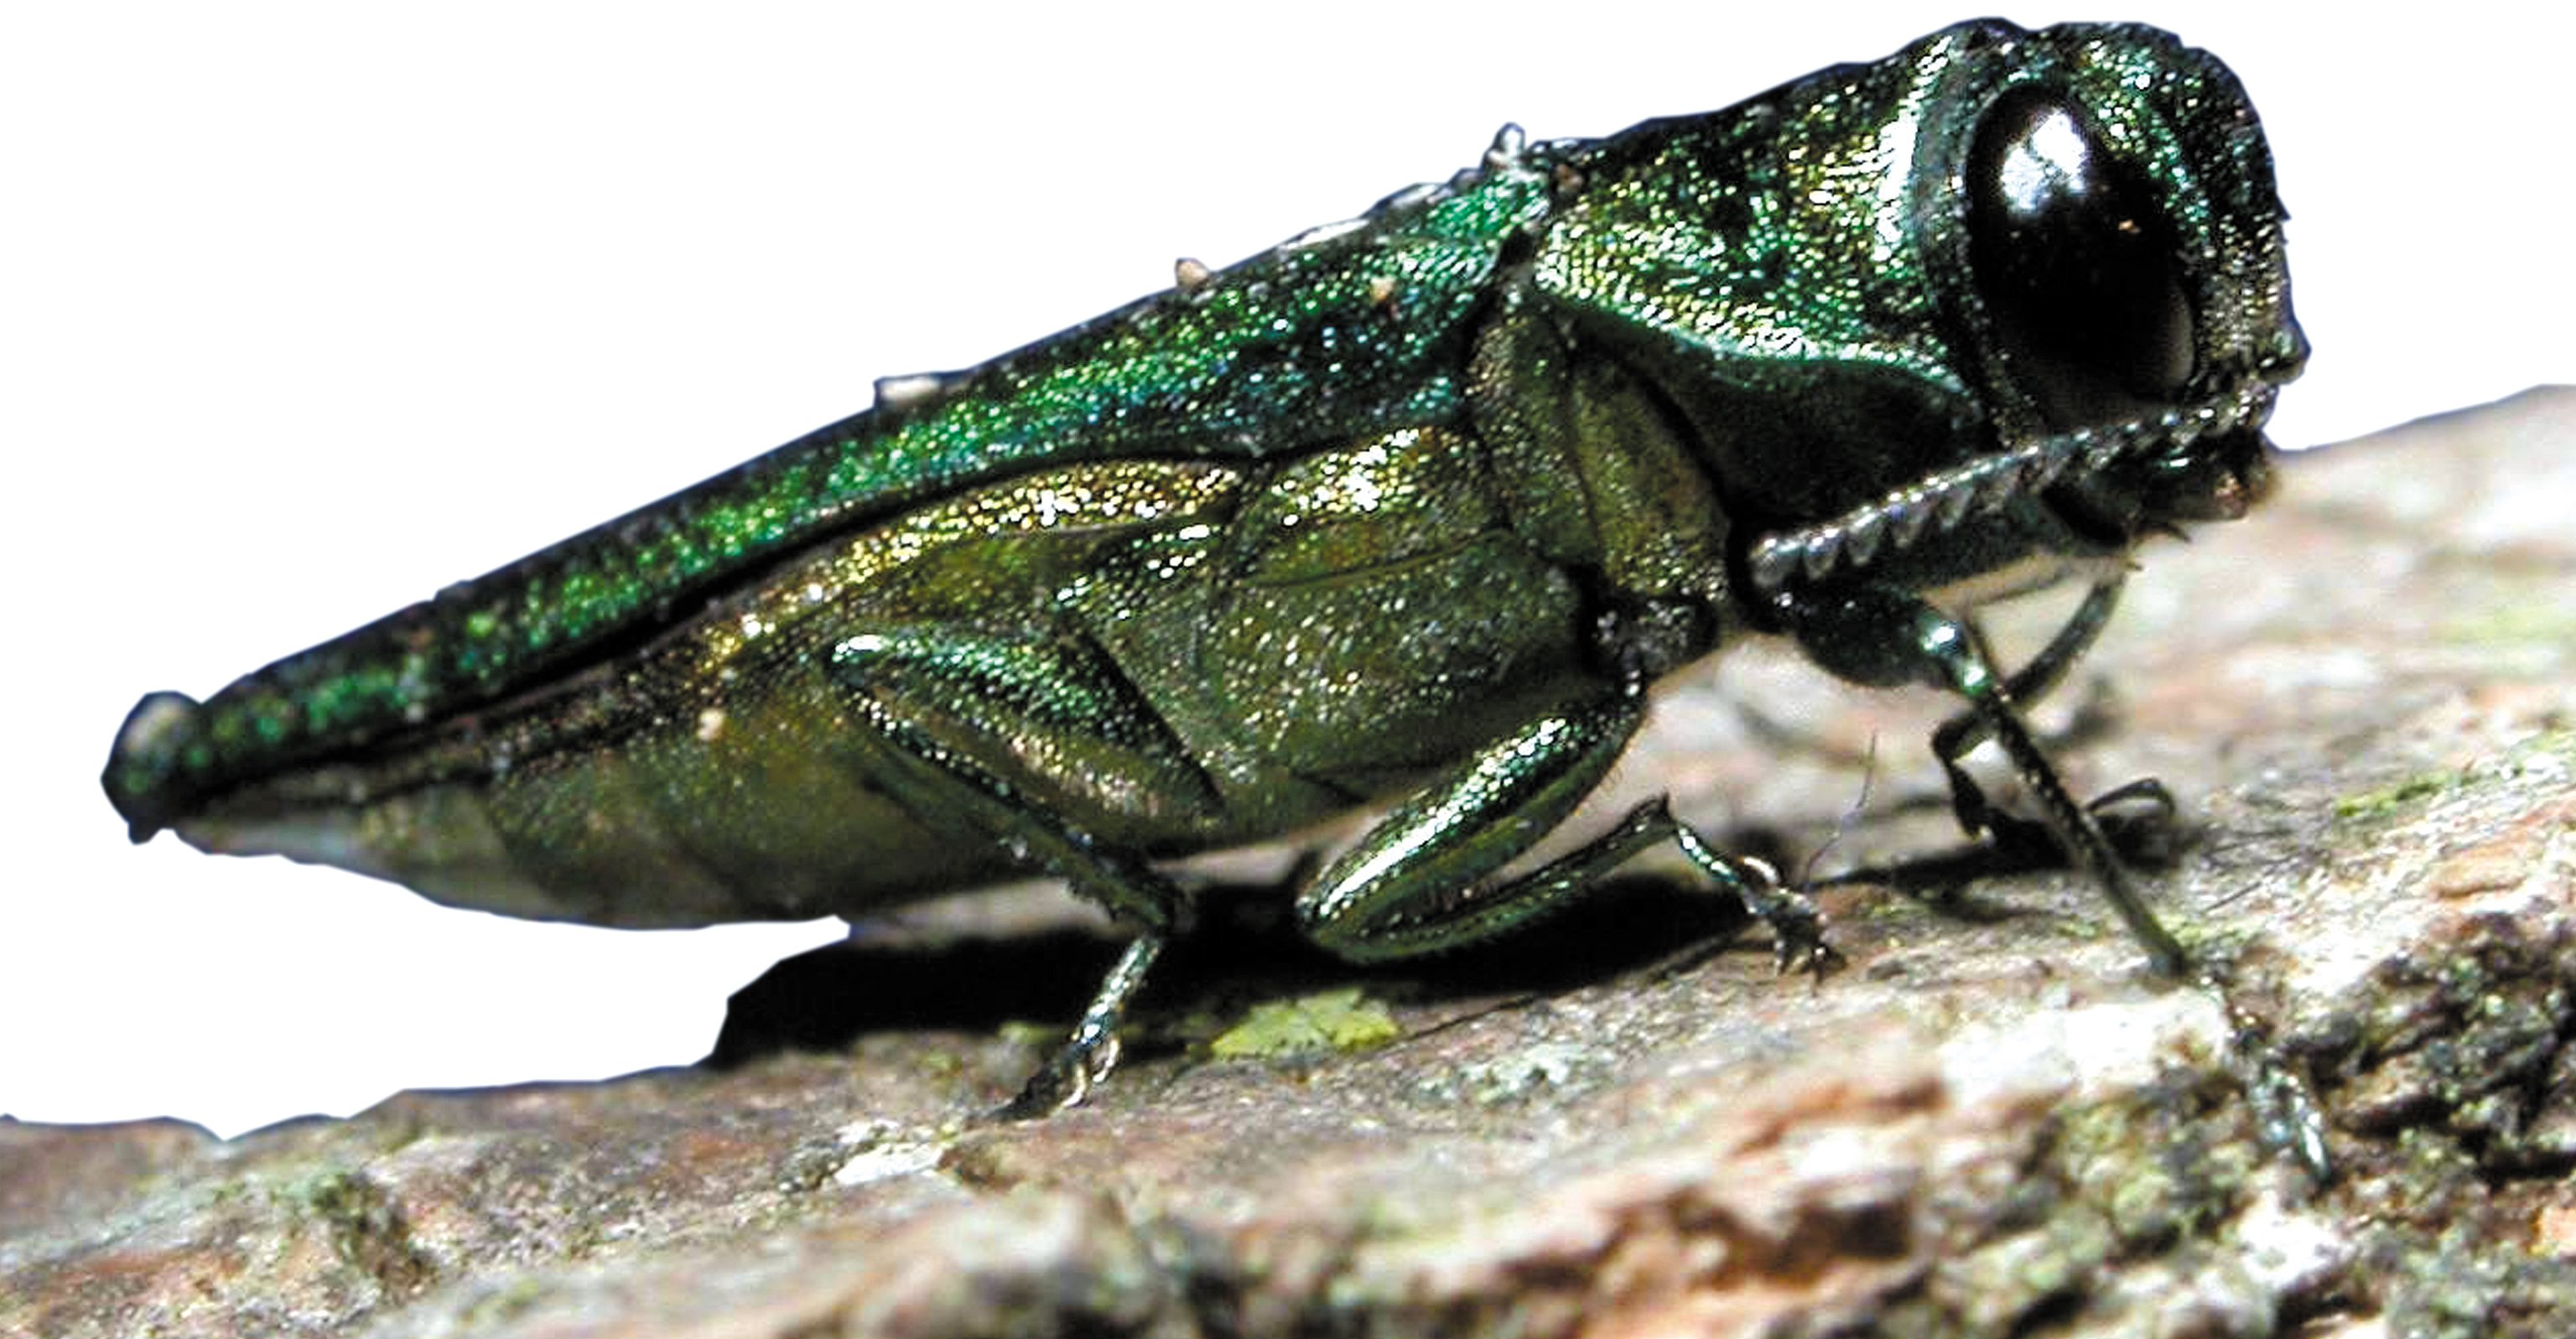 Emerald Ash Borer Pest Control Products and Supplies